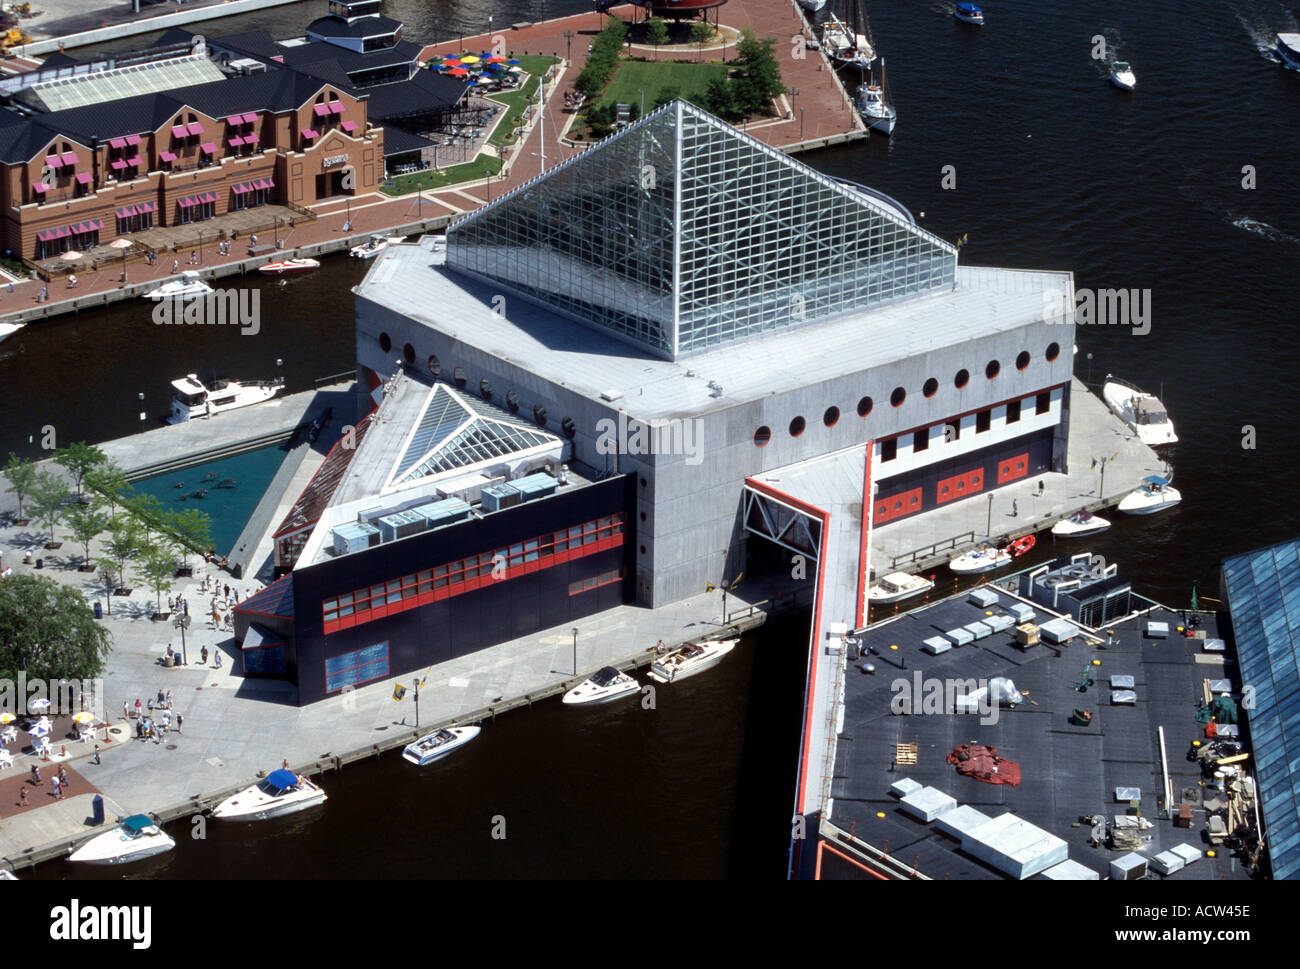 Aerial View of National Aquarium Baltimore Maryland USA - Stock Image